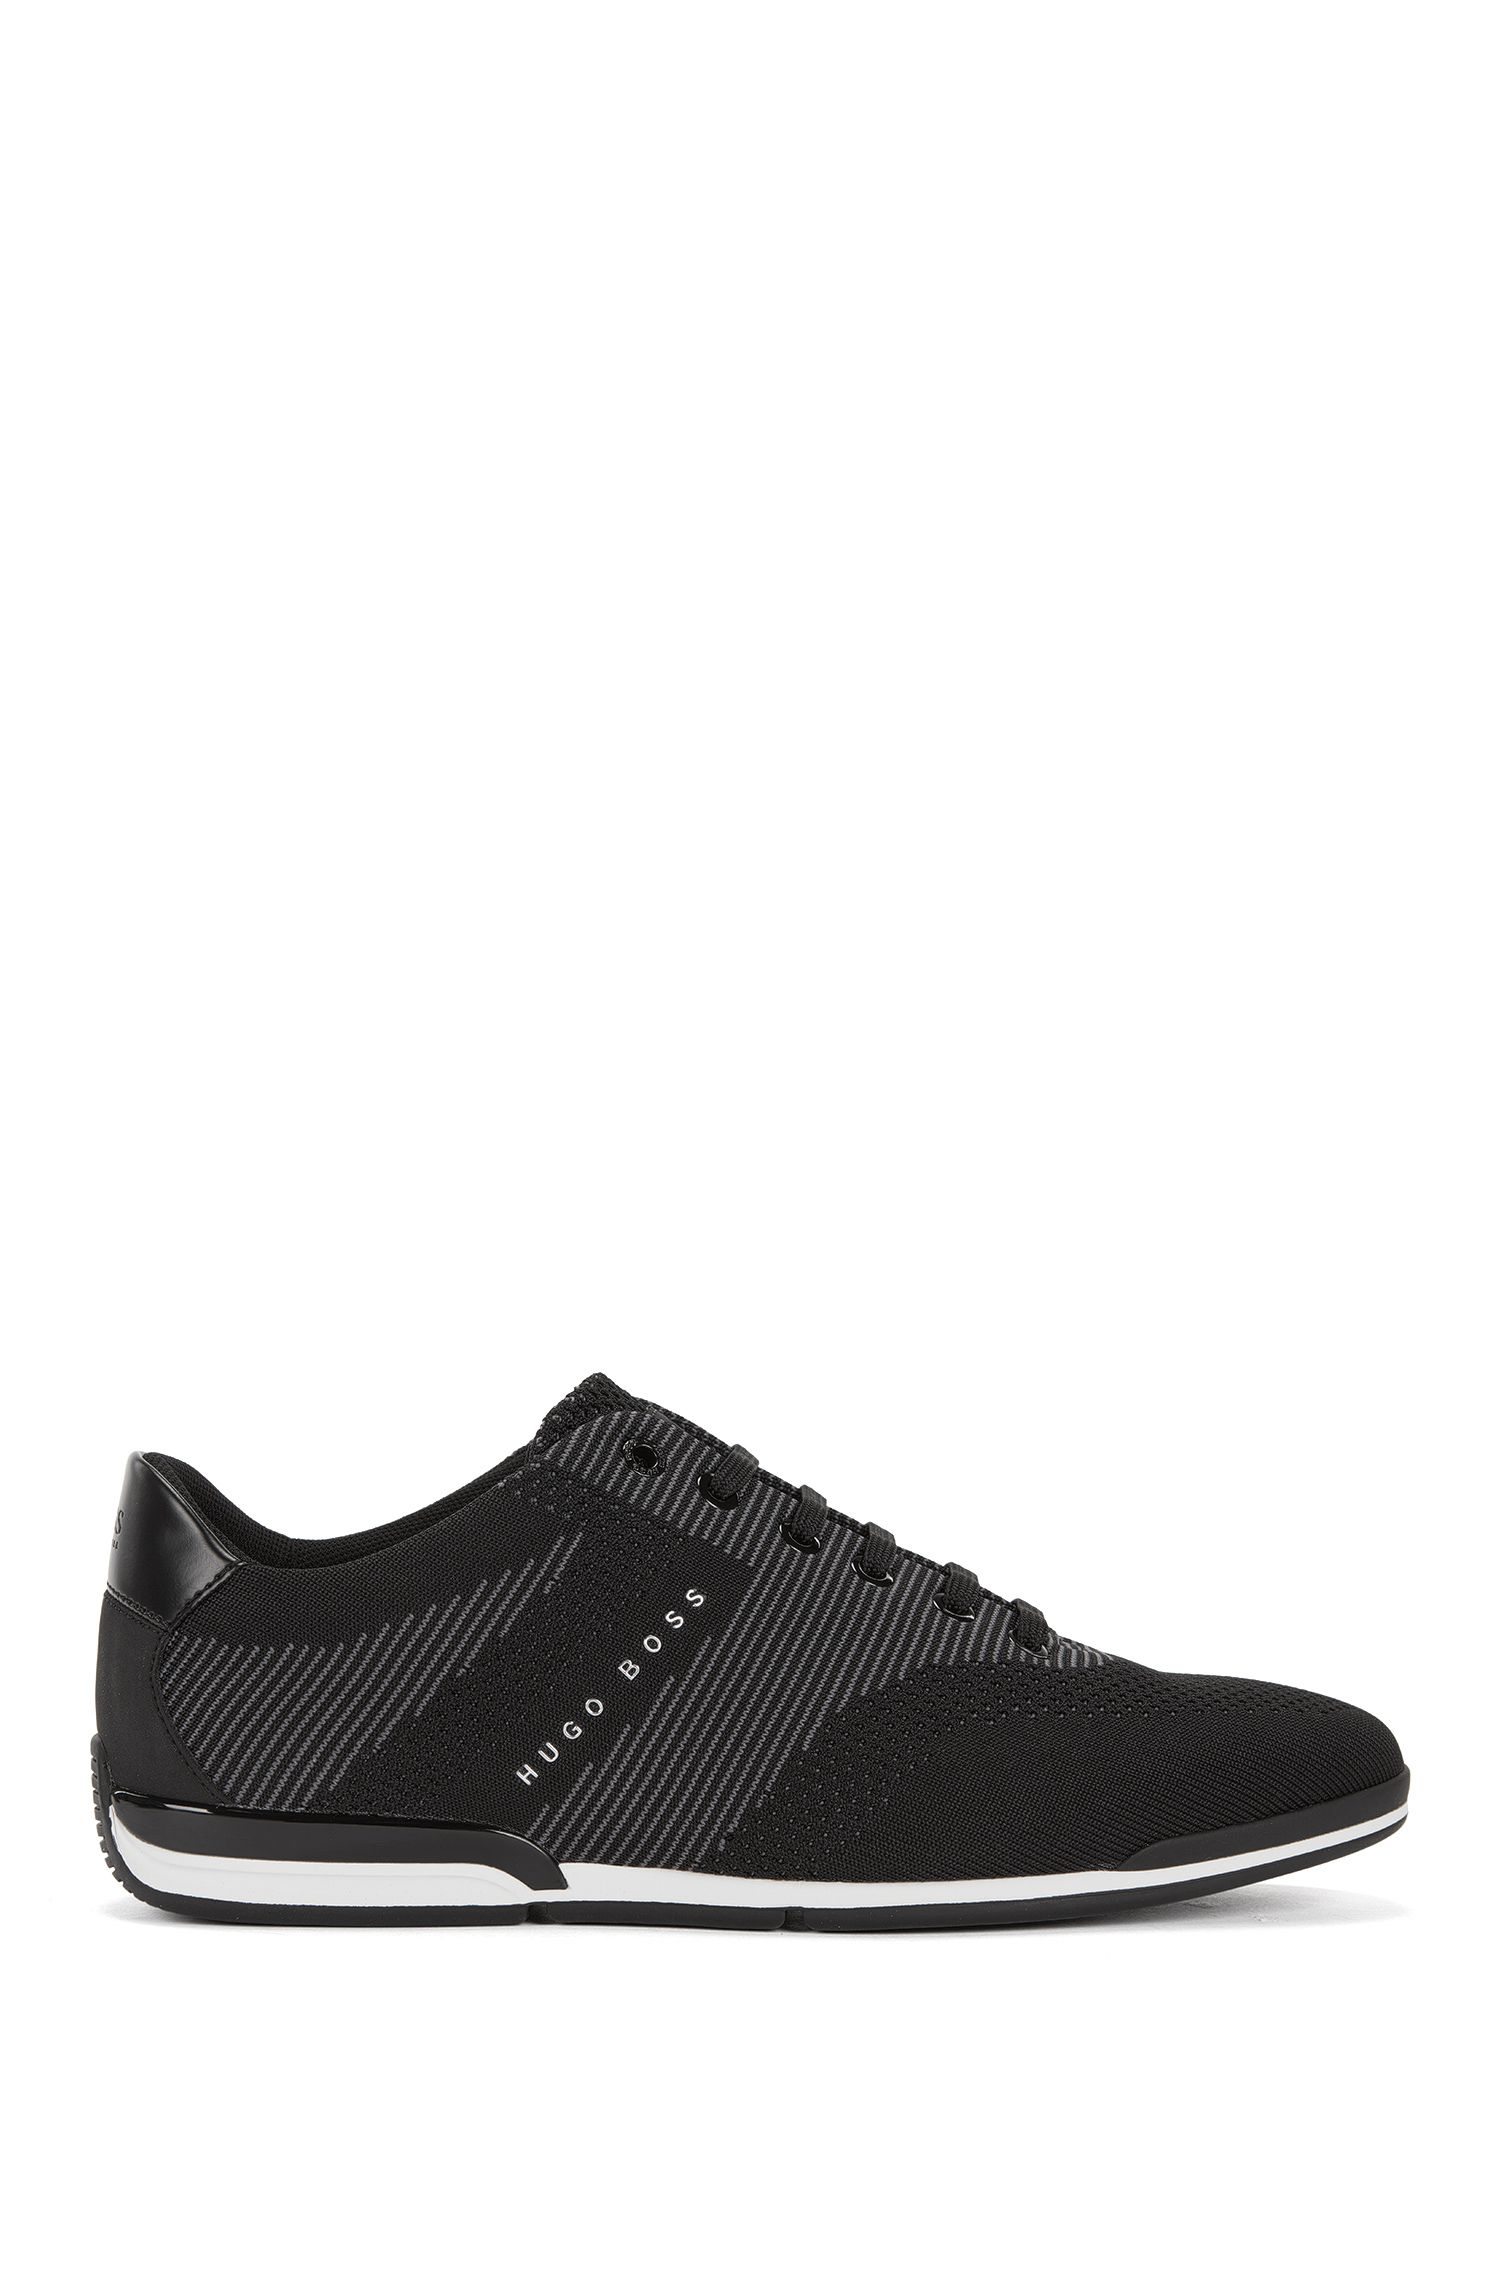 Sneakers low-top con tomaia in maglia senza cuciture